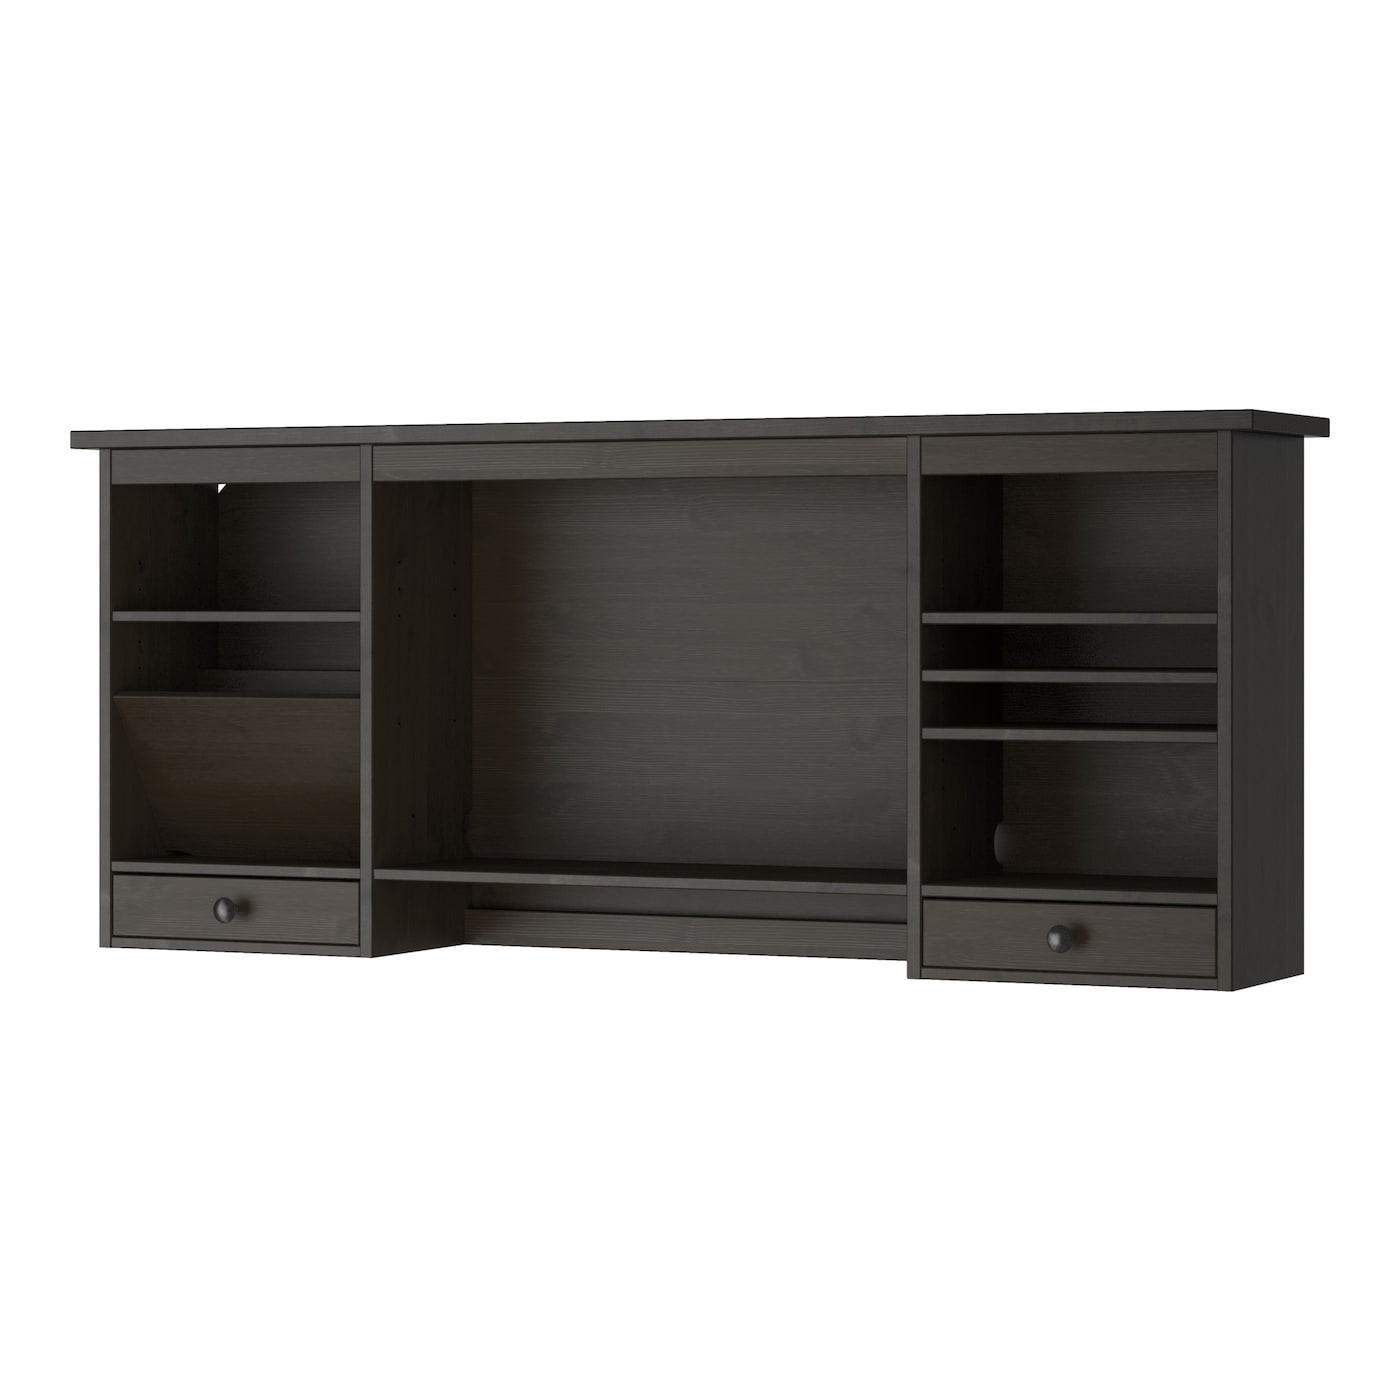 IKEA HEMNES add-on unit desk Solid wood is a durable natural material.